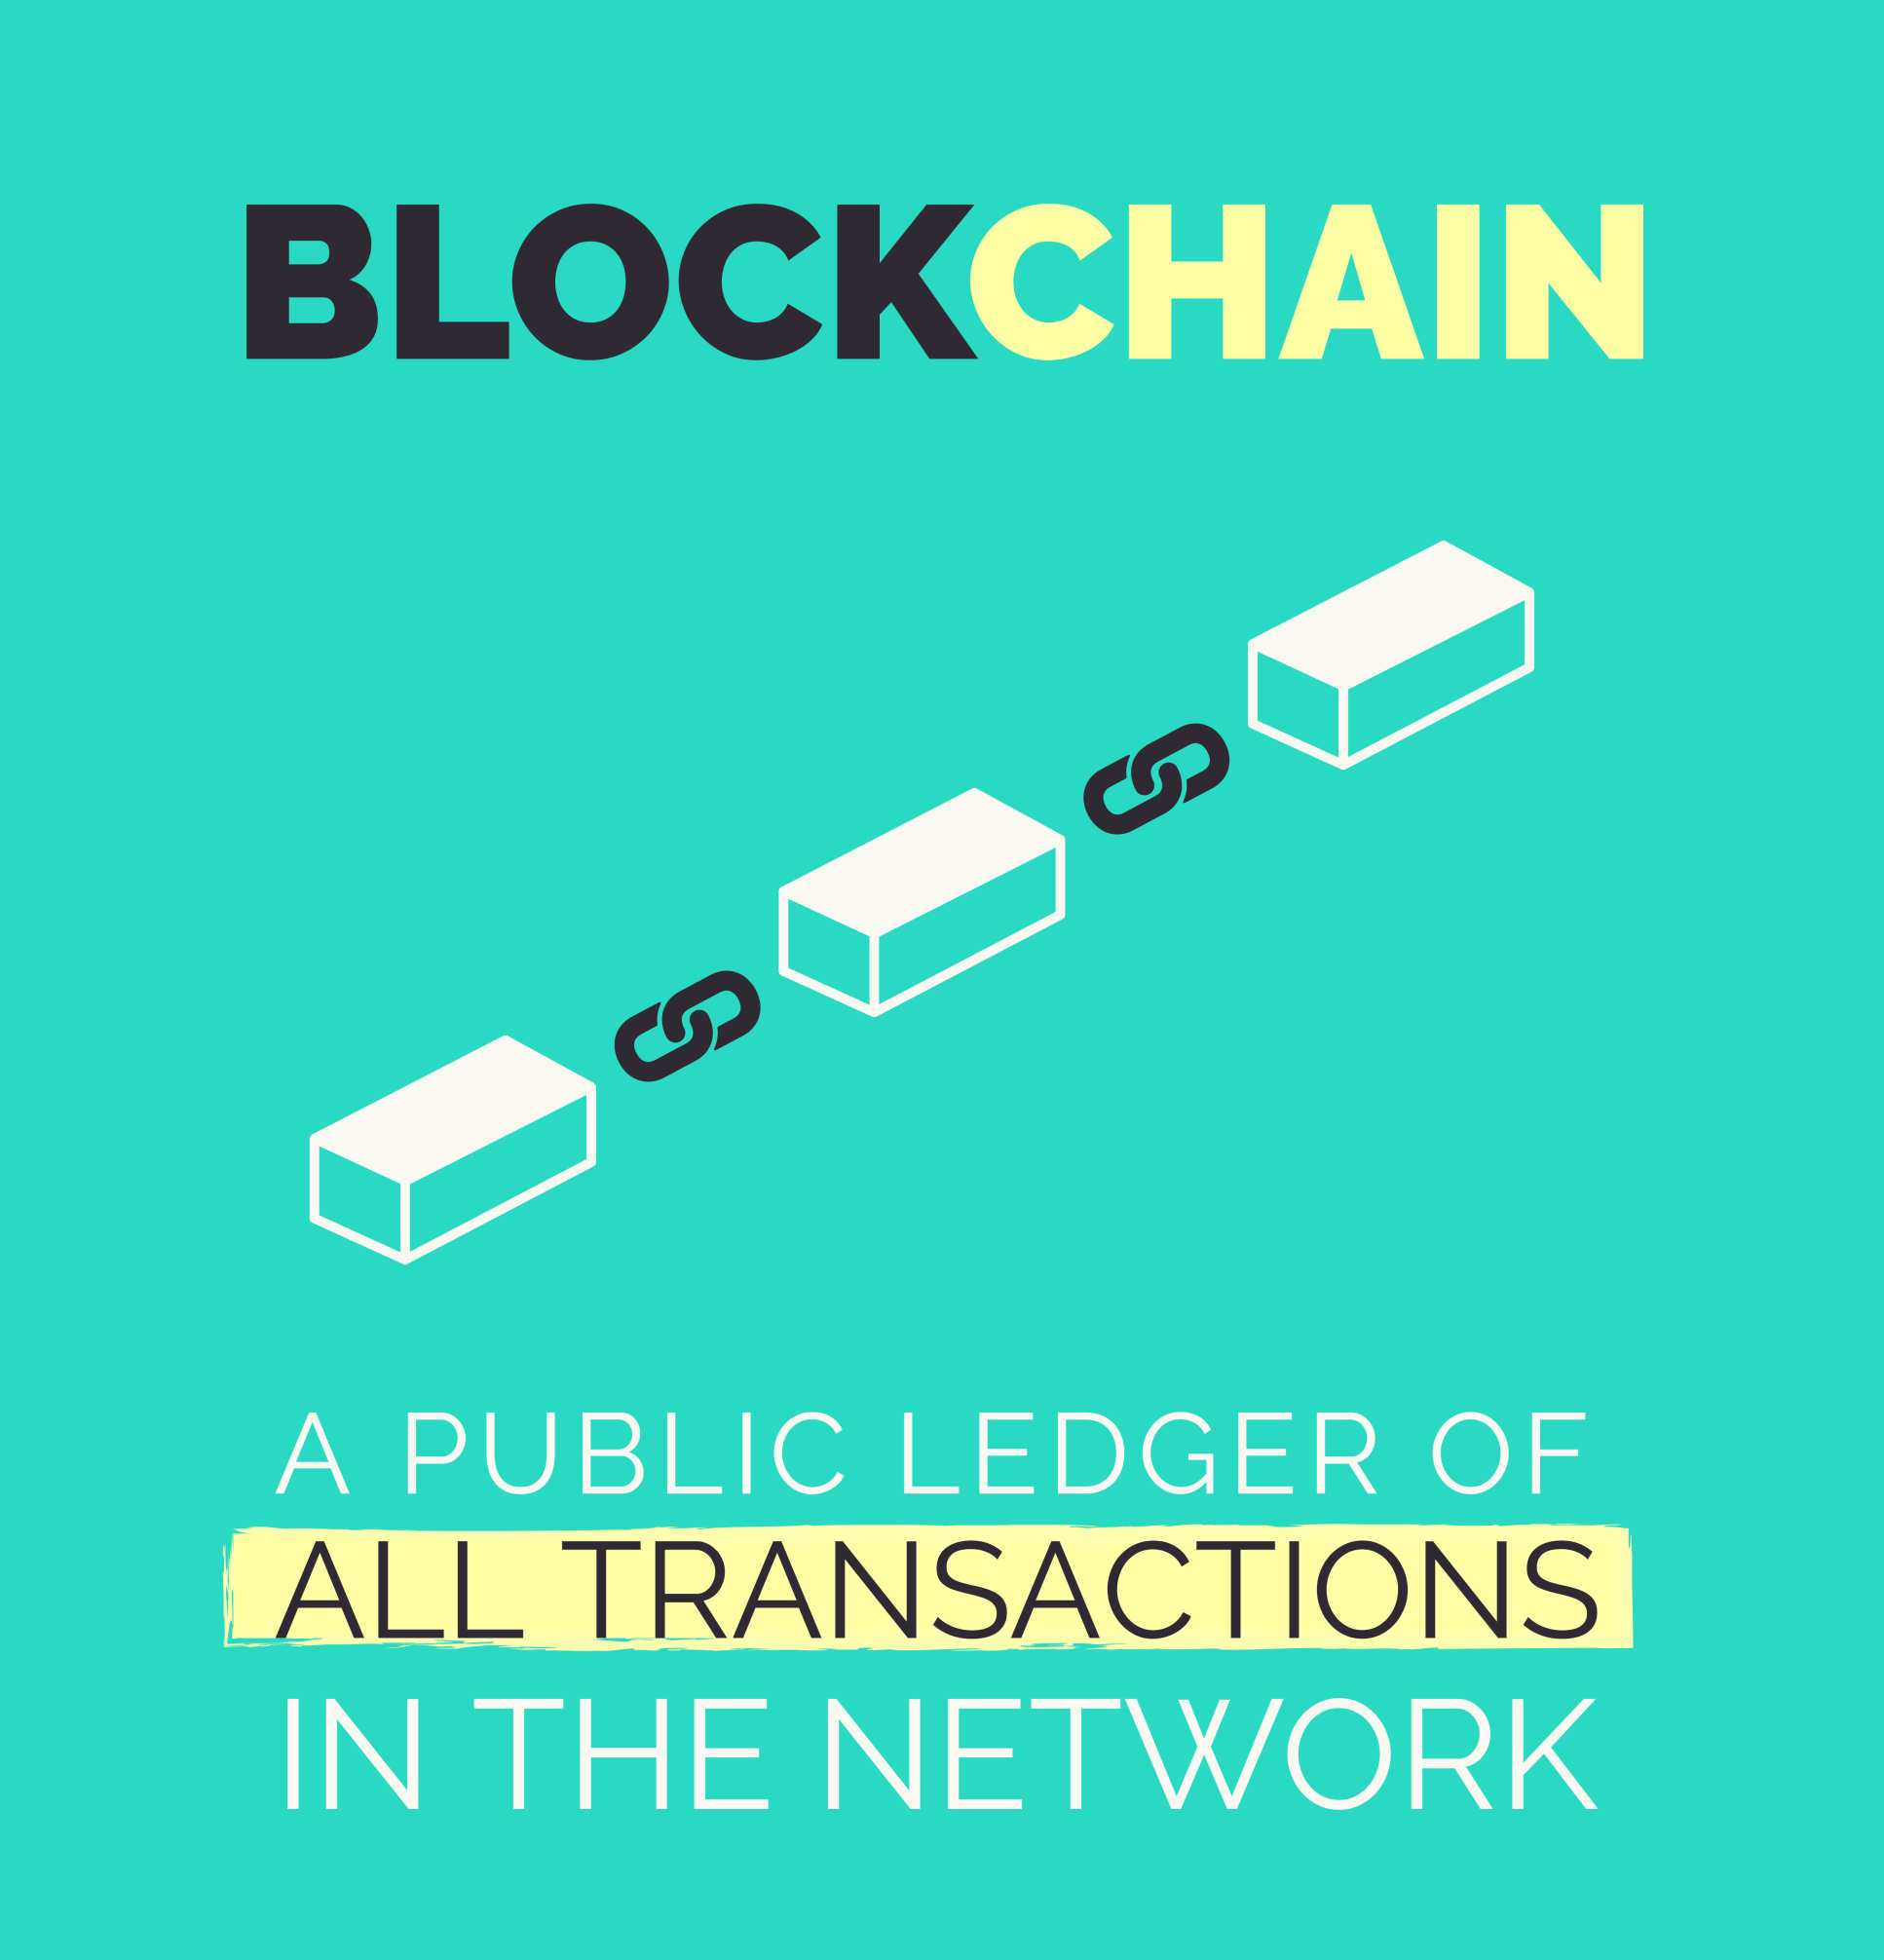 Illustration caption: Blockchain - a public ledger of all transactions in the network